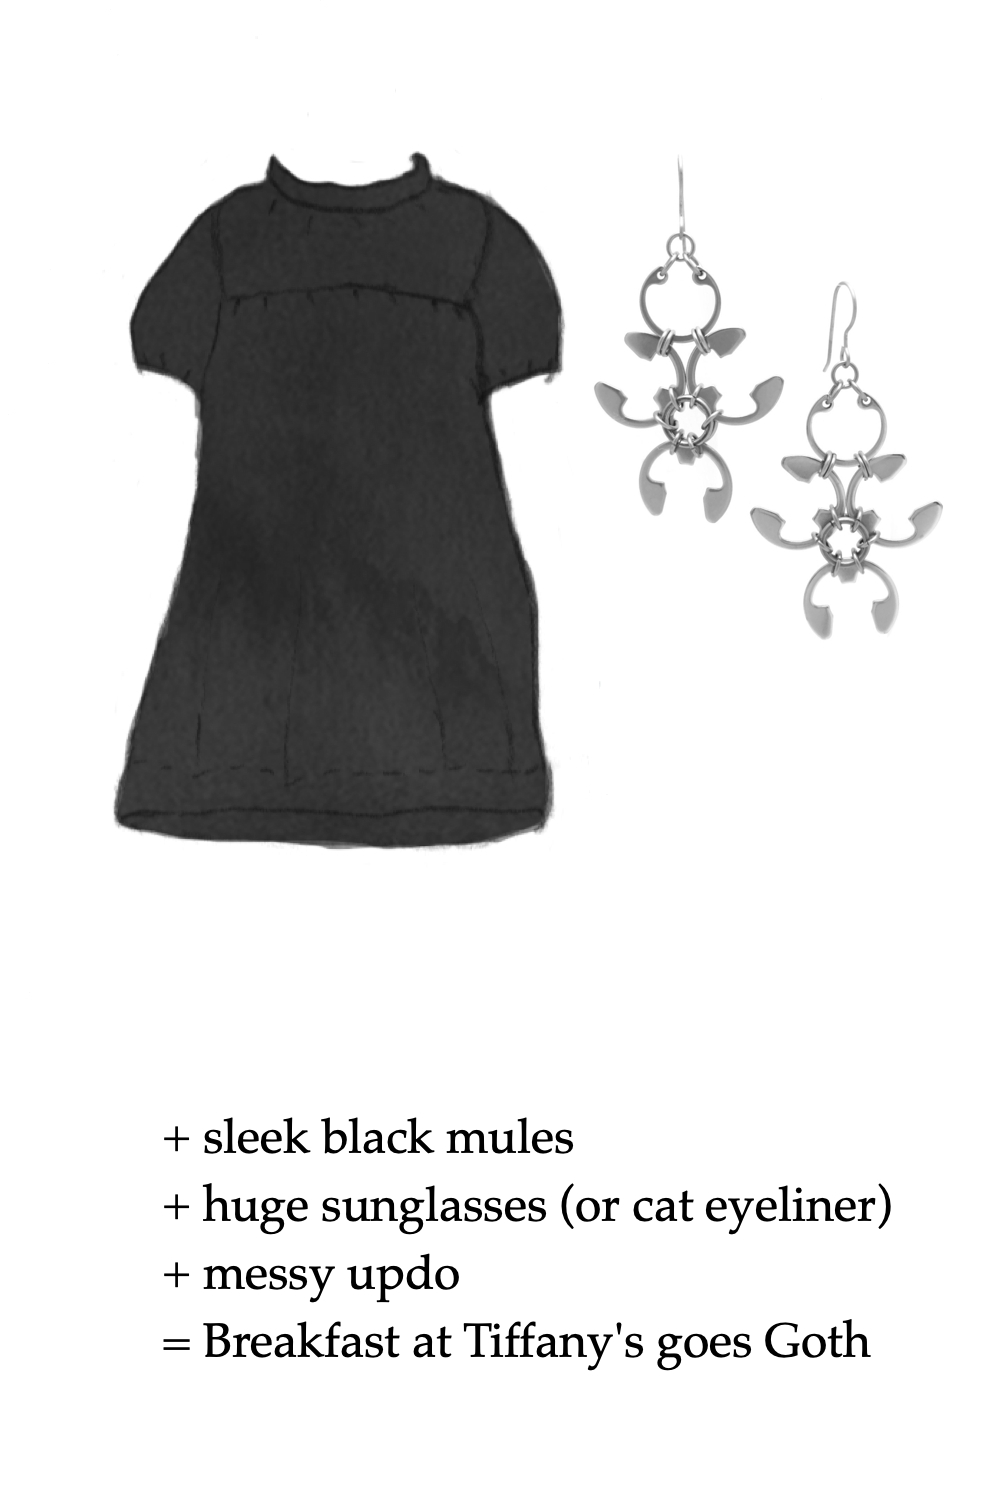 Style sketch of a loose black mini dress with short sleeves and a high collar, paired with Wraptillion's spiky chandelier Garland Earrings. Text on image reads: + sleek black mules + huge sunglasses (or cat eyeliner) + messy updo = Breakfast at Tiffany's goes Goth.